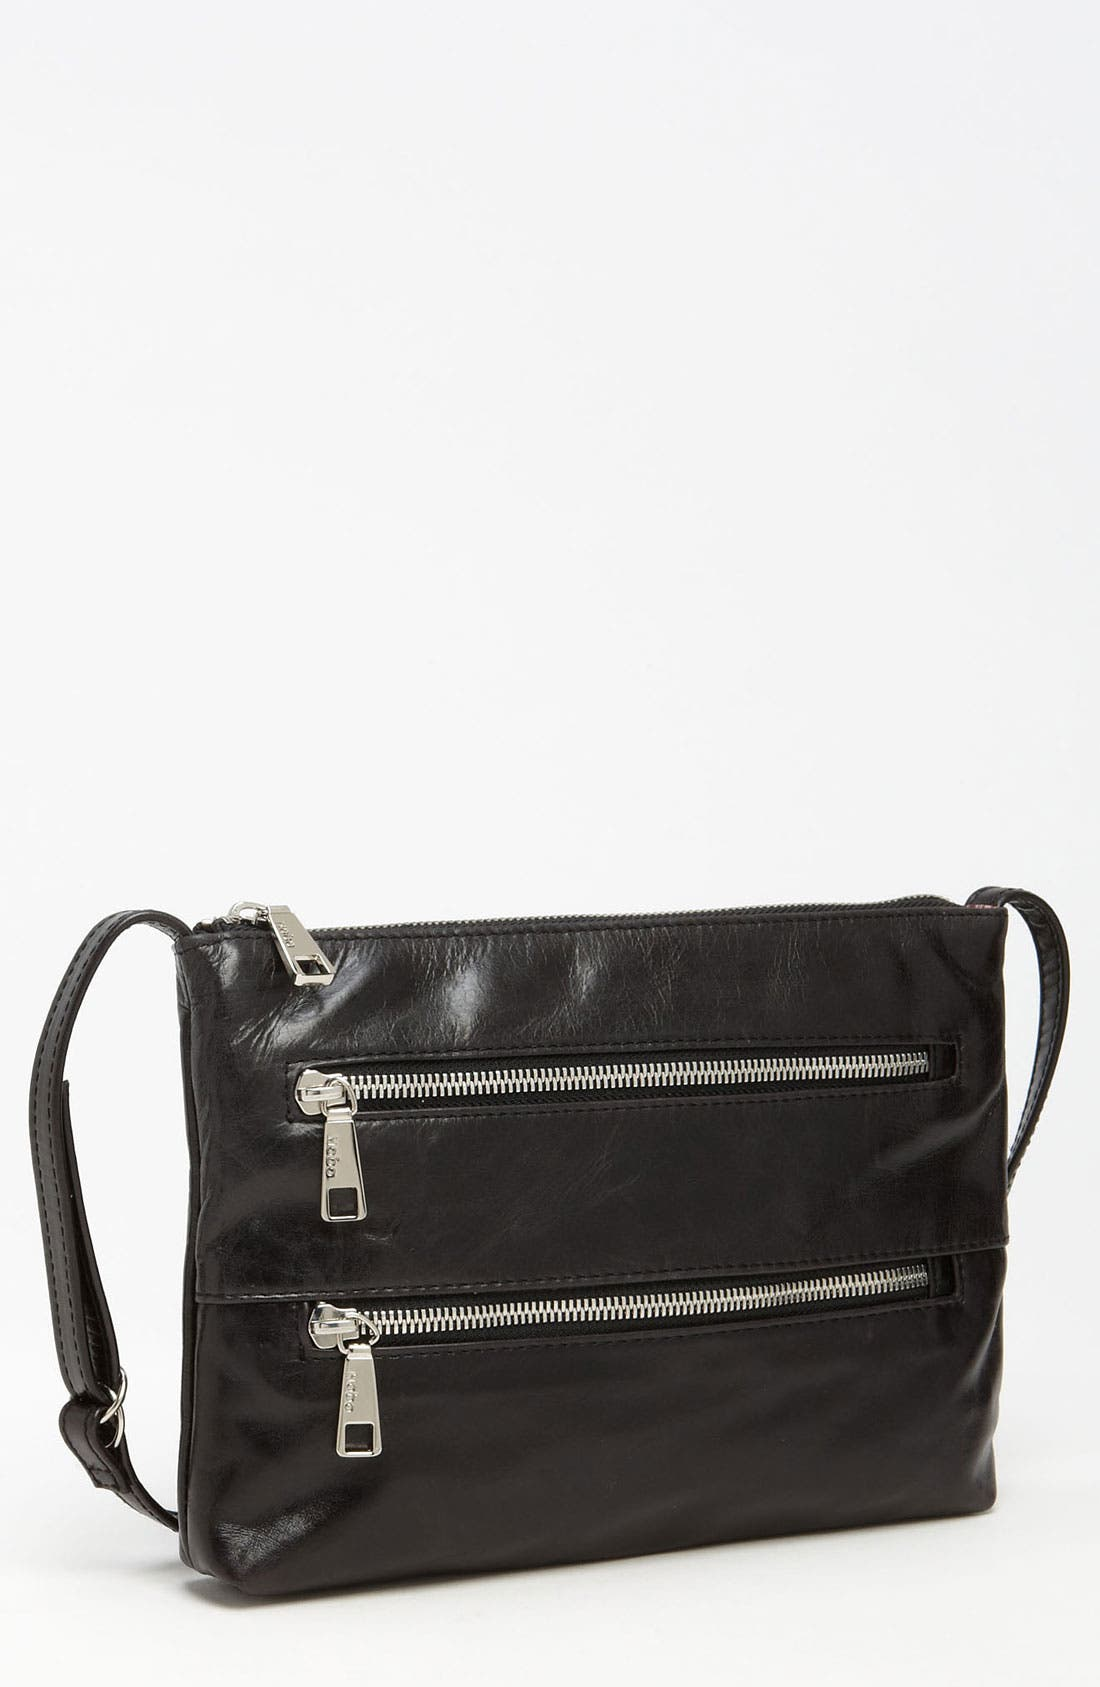 Main Image - Hobo 'Mara' Crossbody Bag